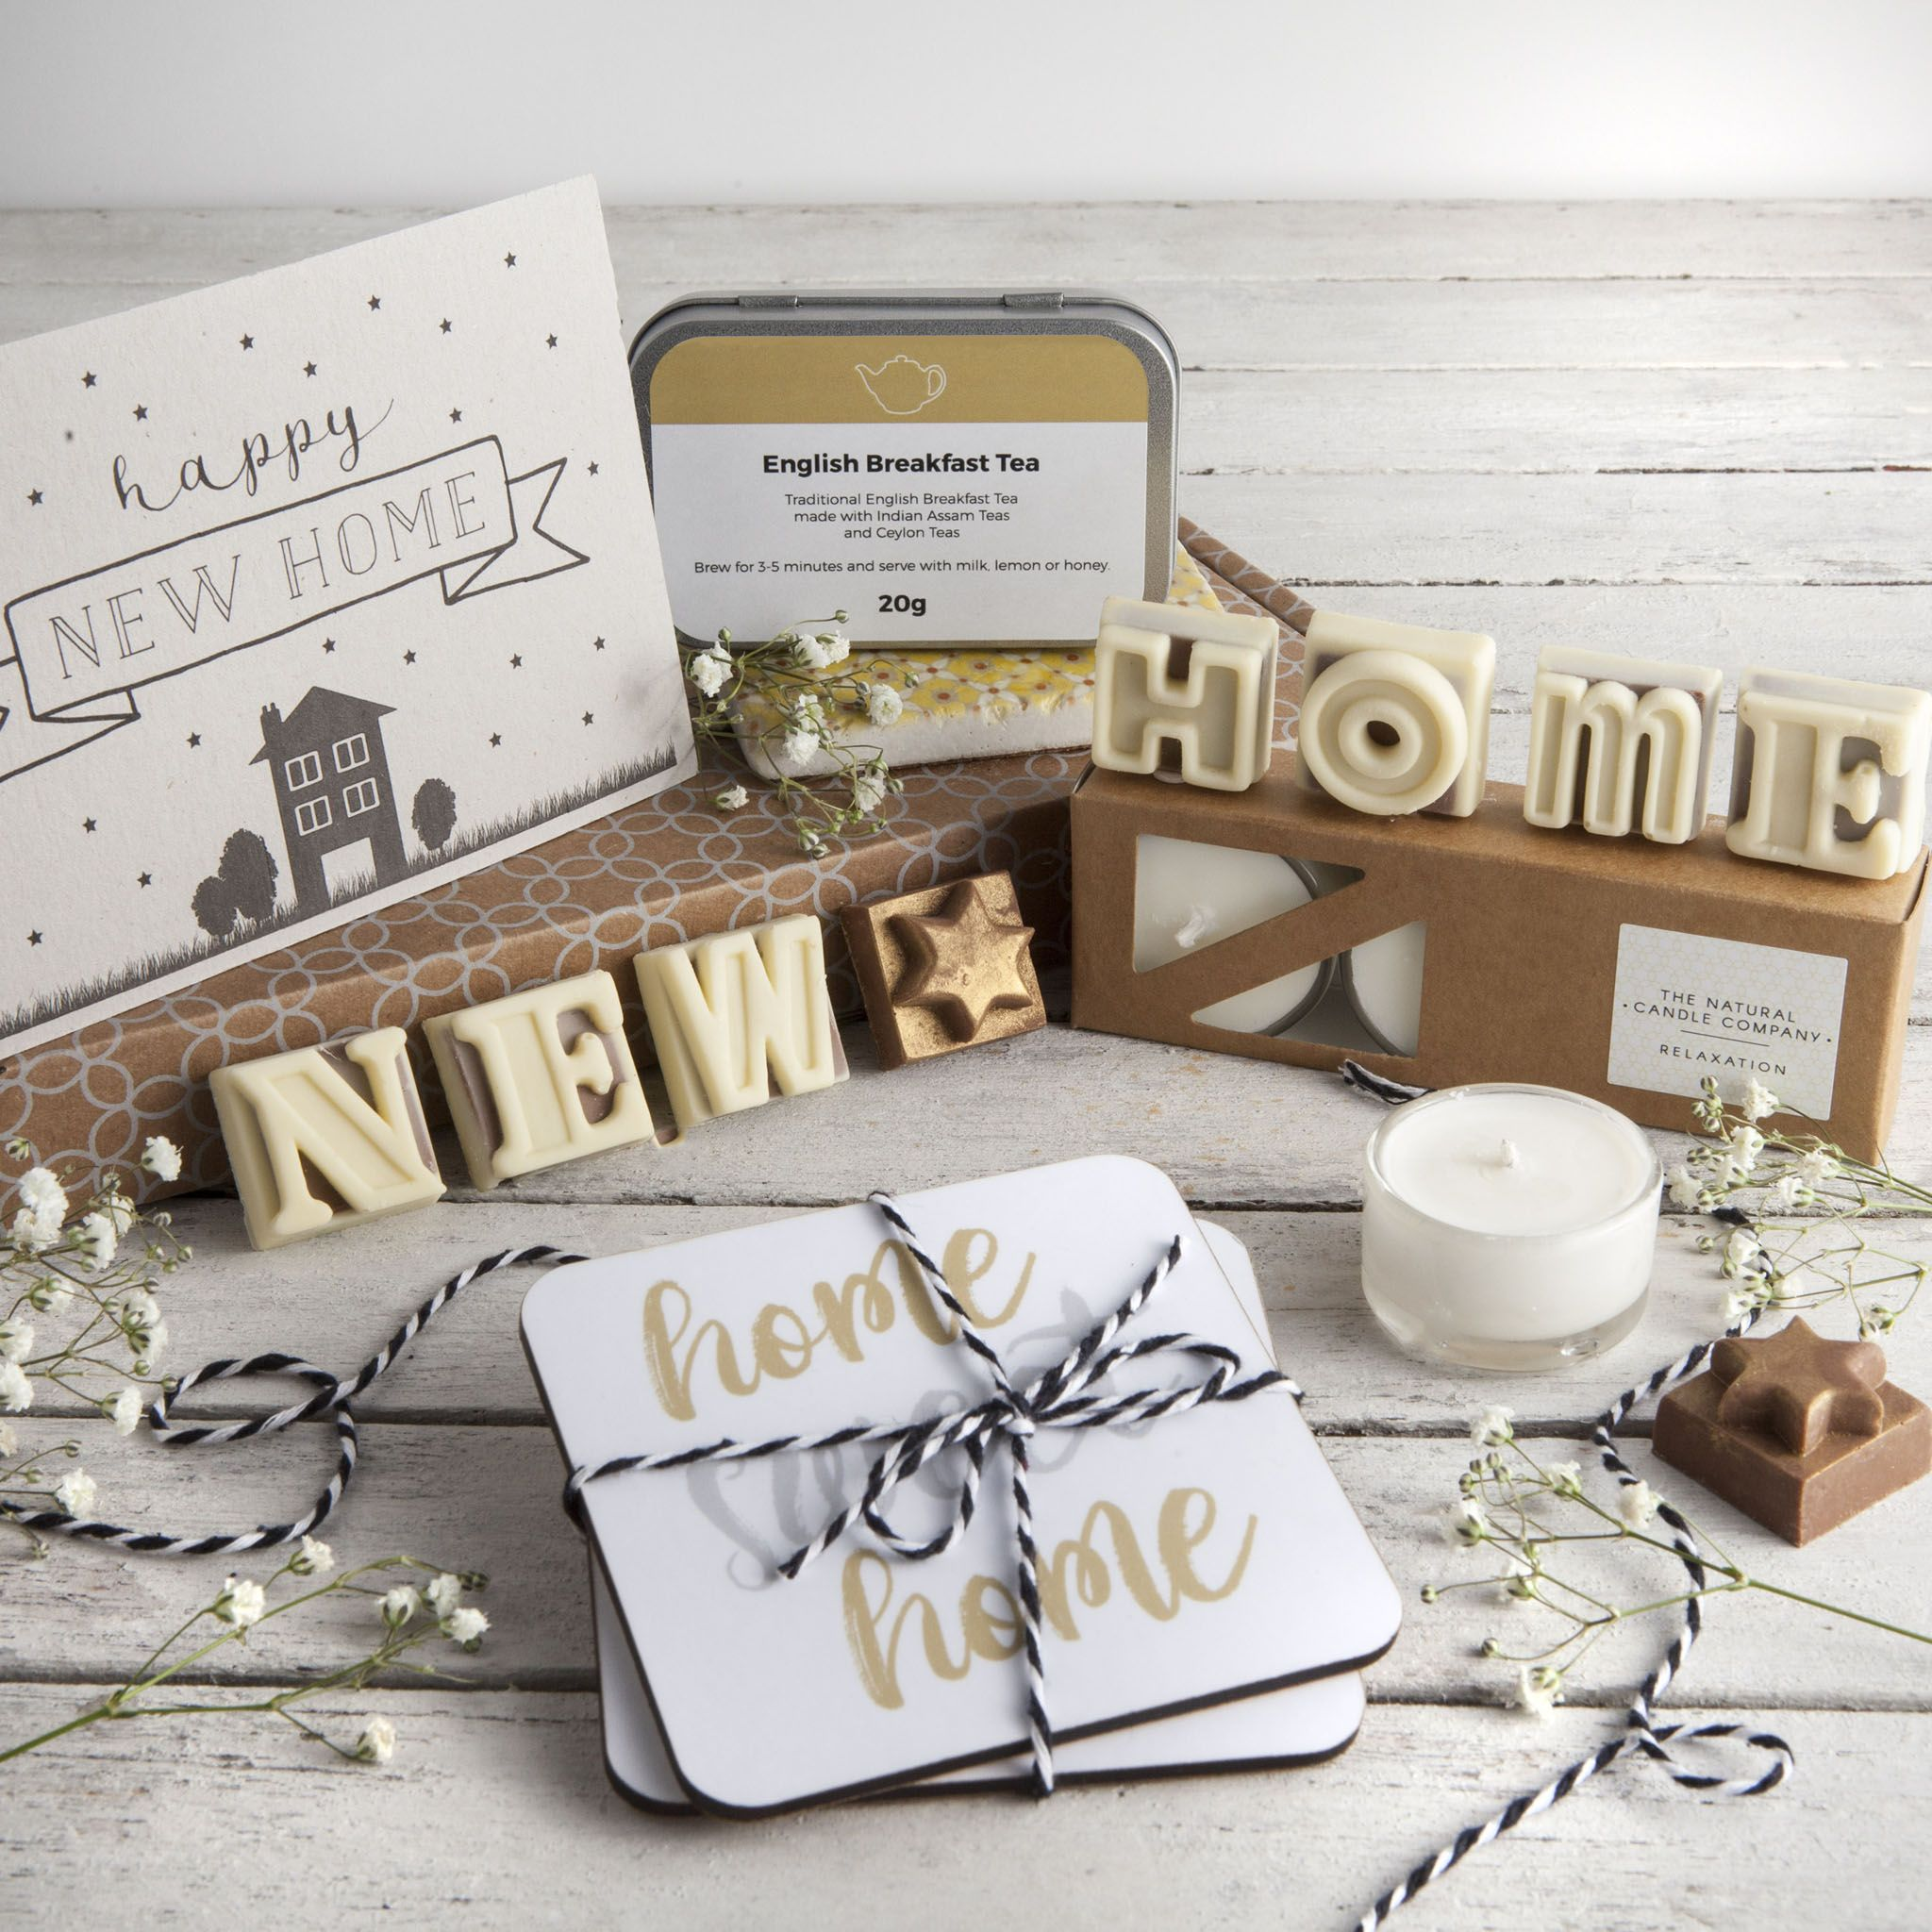 Say congratulations on the new home with our latest letterbox gift ...